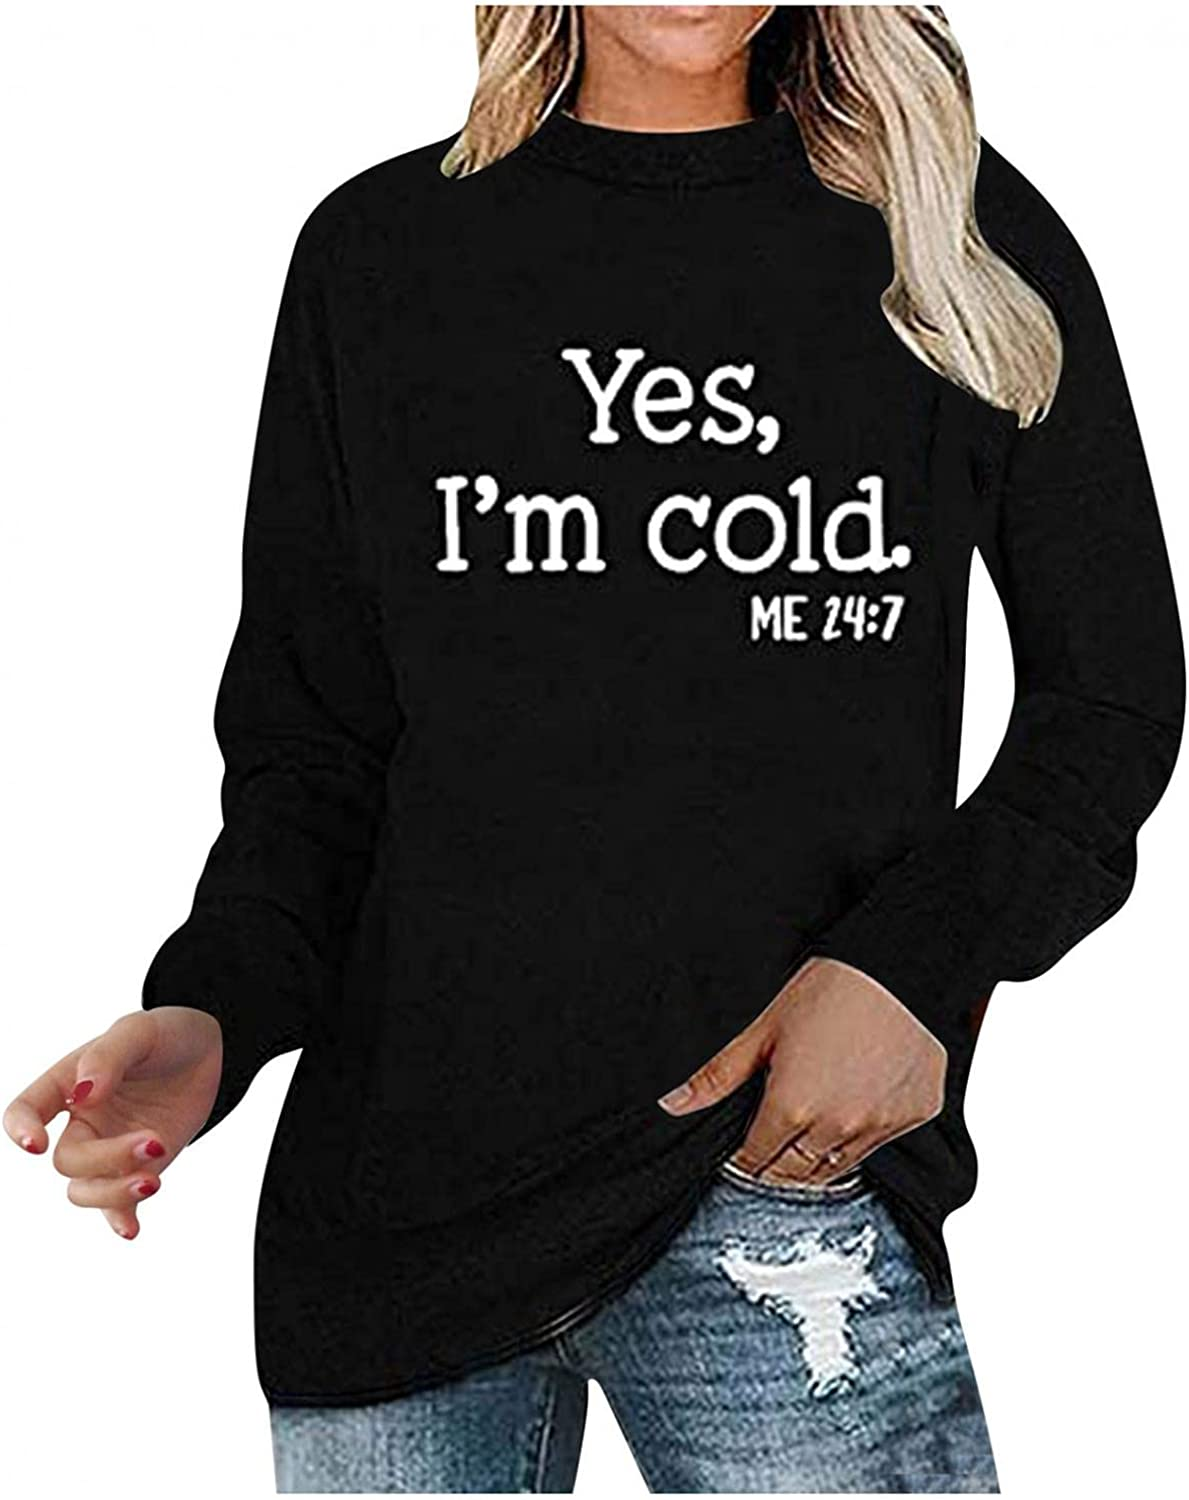 Yxiudeyyr Yes I'm Cold Me 24 7 Yes I'm Cold Sweatshirt,Women's Letter Graphic Tee Funny Long Sleeve Sweatshirt Pullover Tops